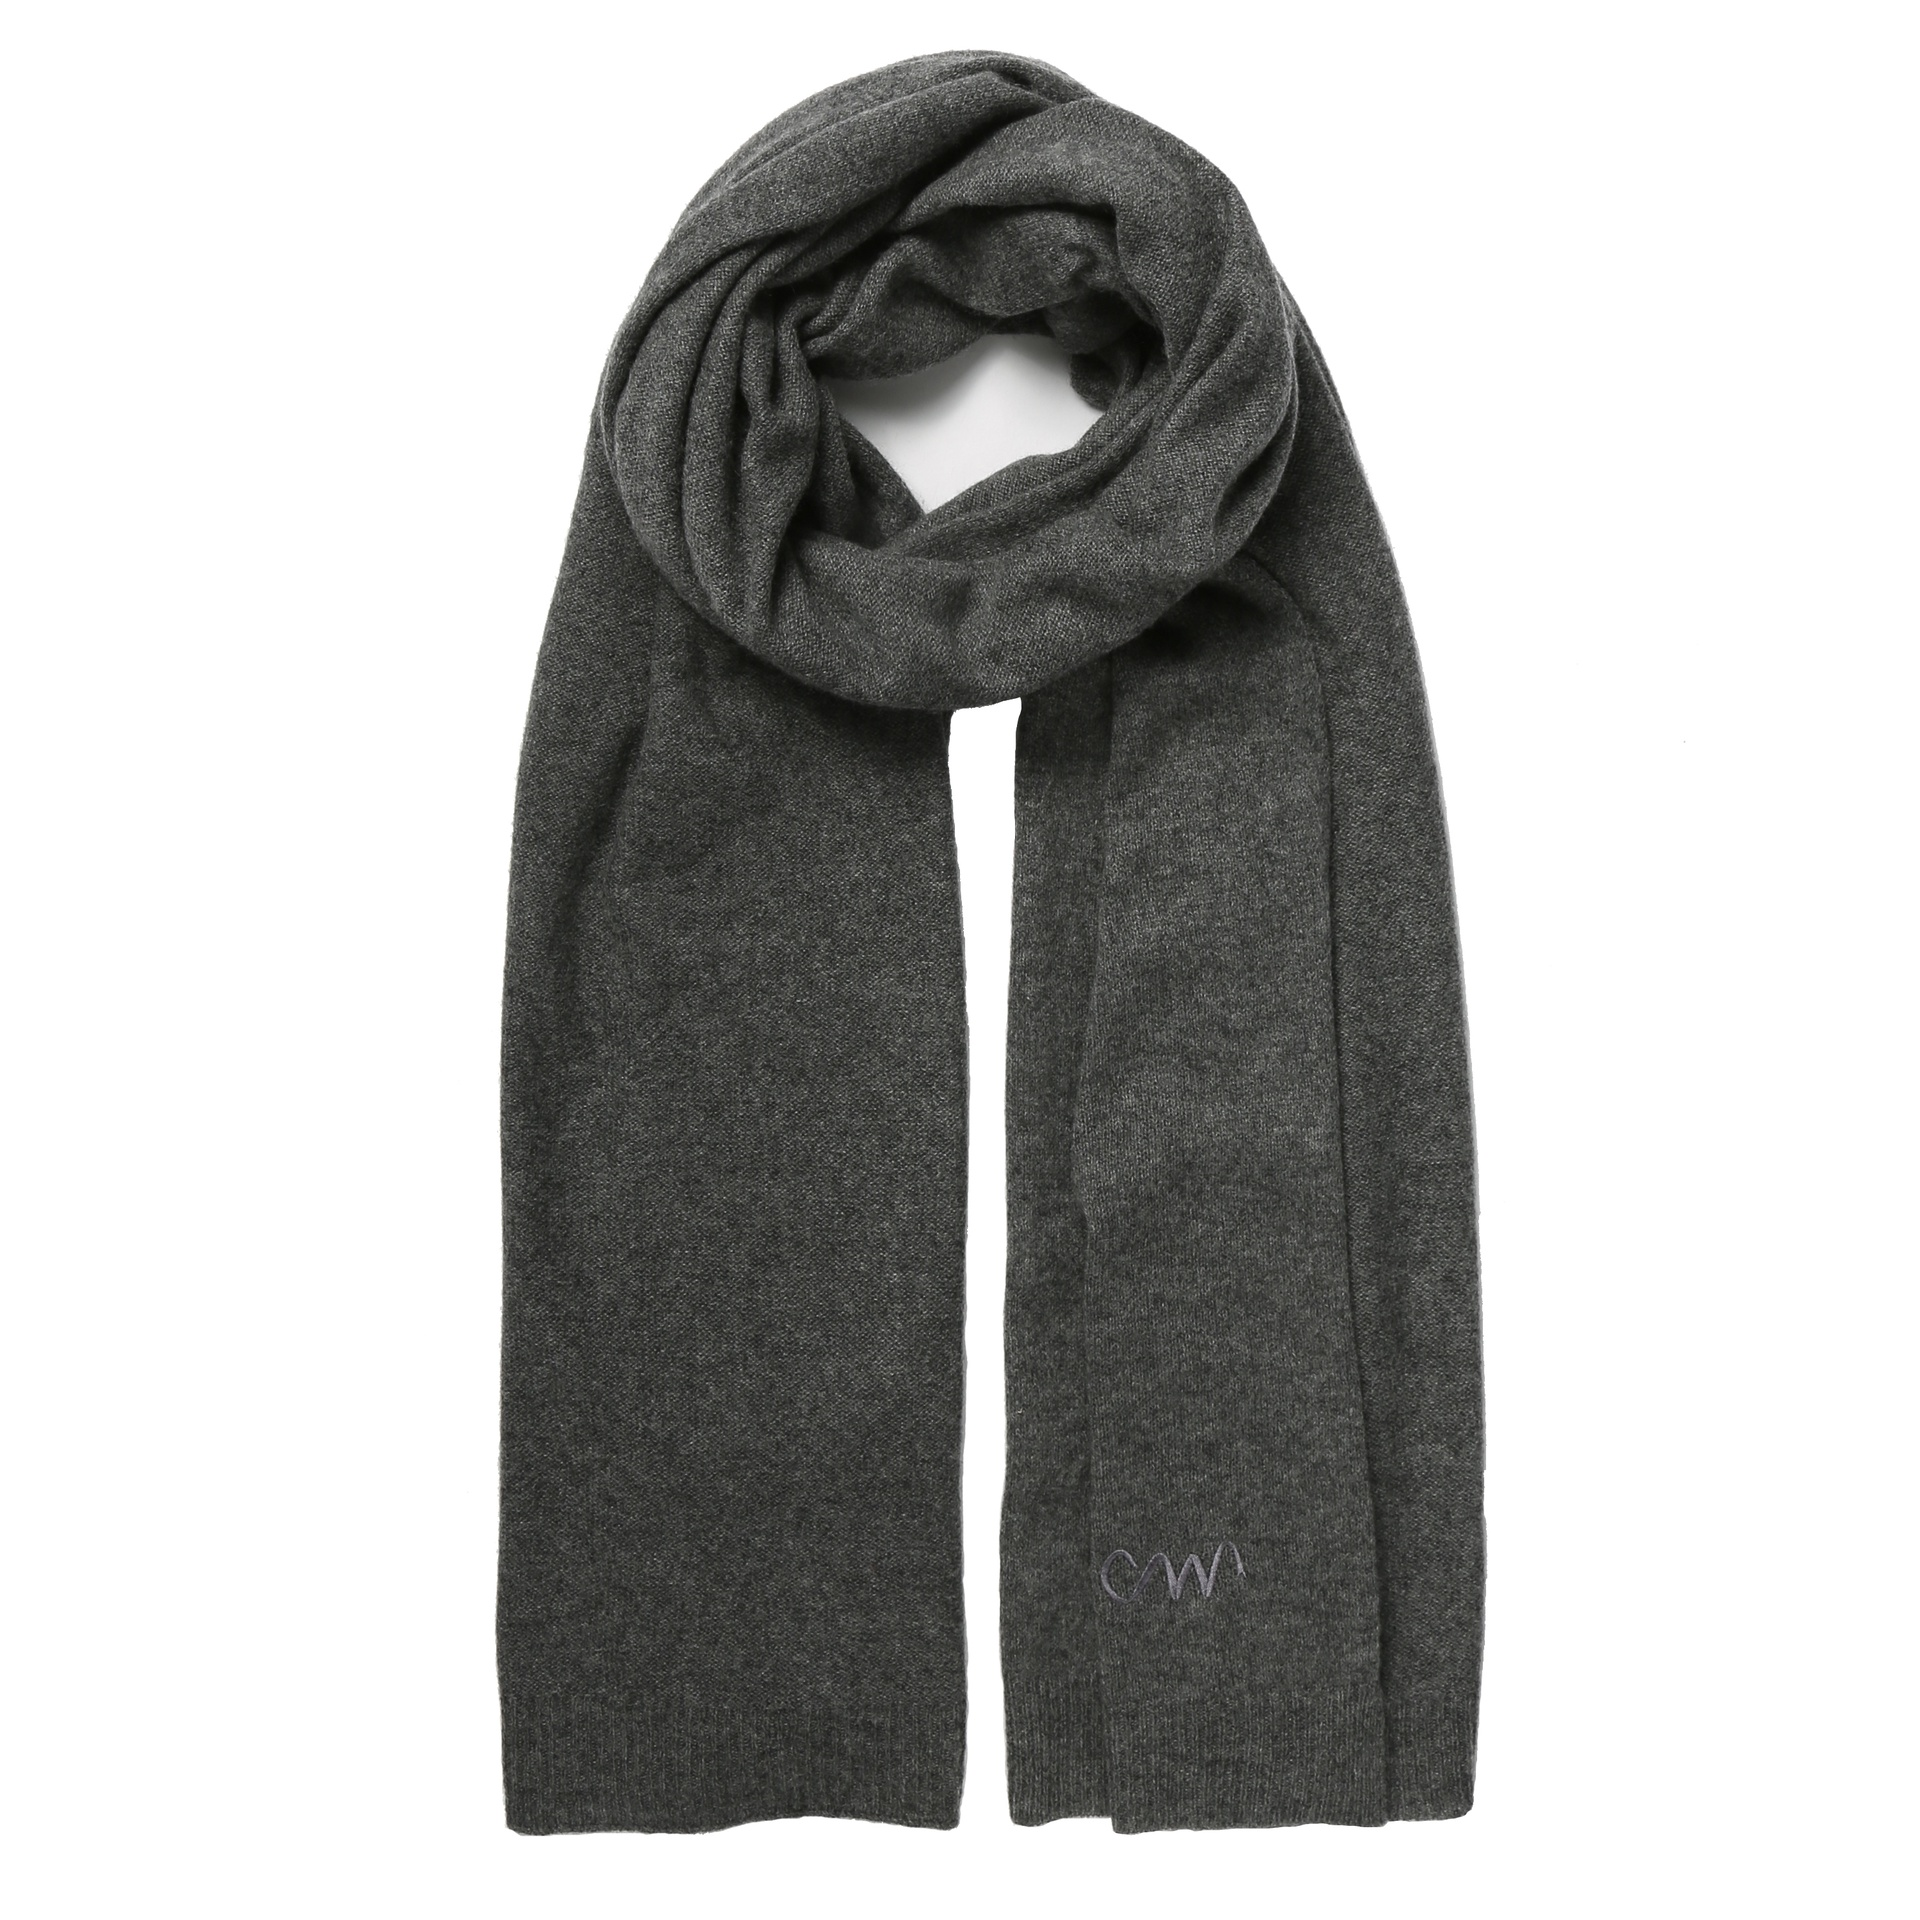 70179697e812b charcoal grey classic cashmere scarf - Cleverly Wrapped